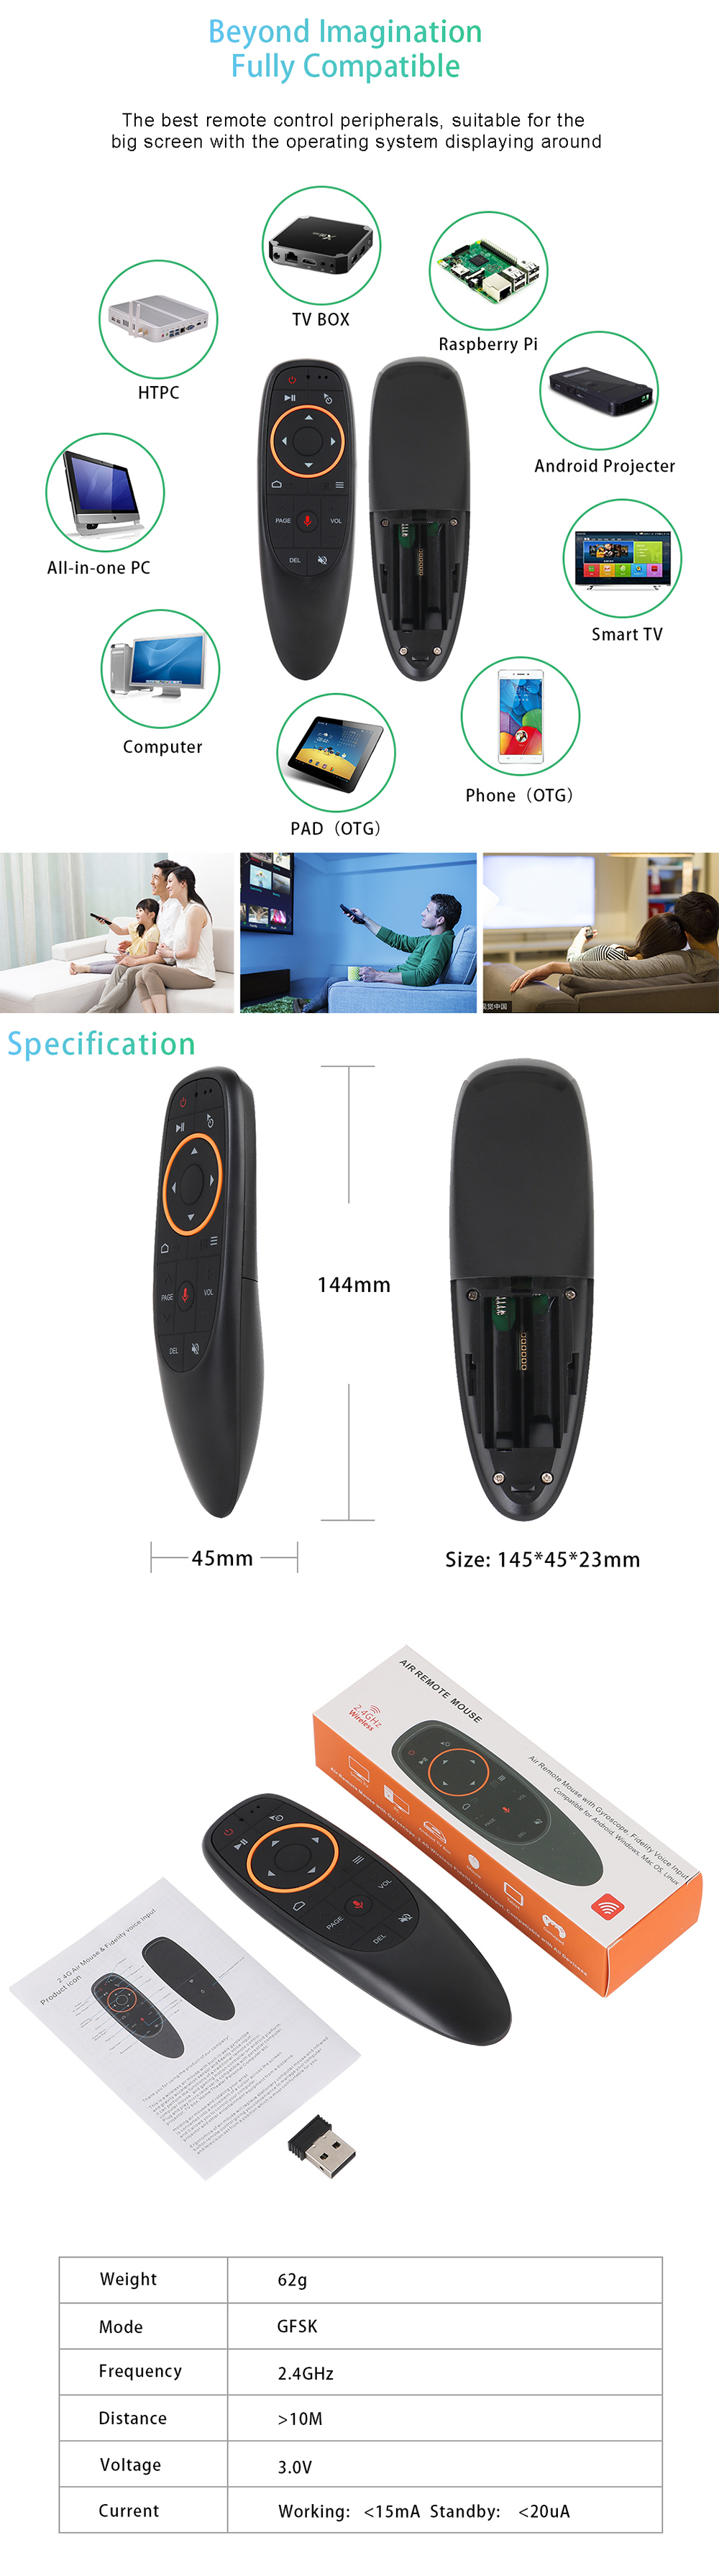 F10 2.4GHz WIFI Googlo Assistant Voice Remote Control Air Mouse